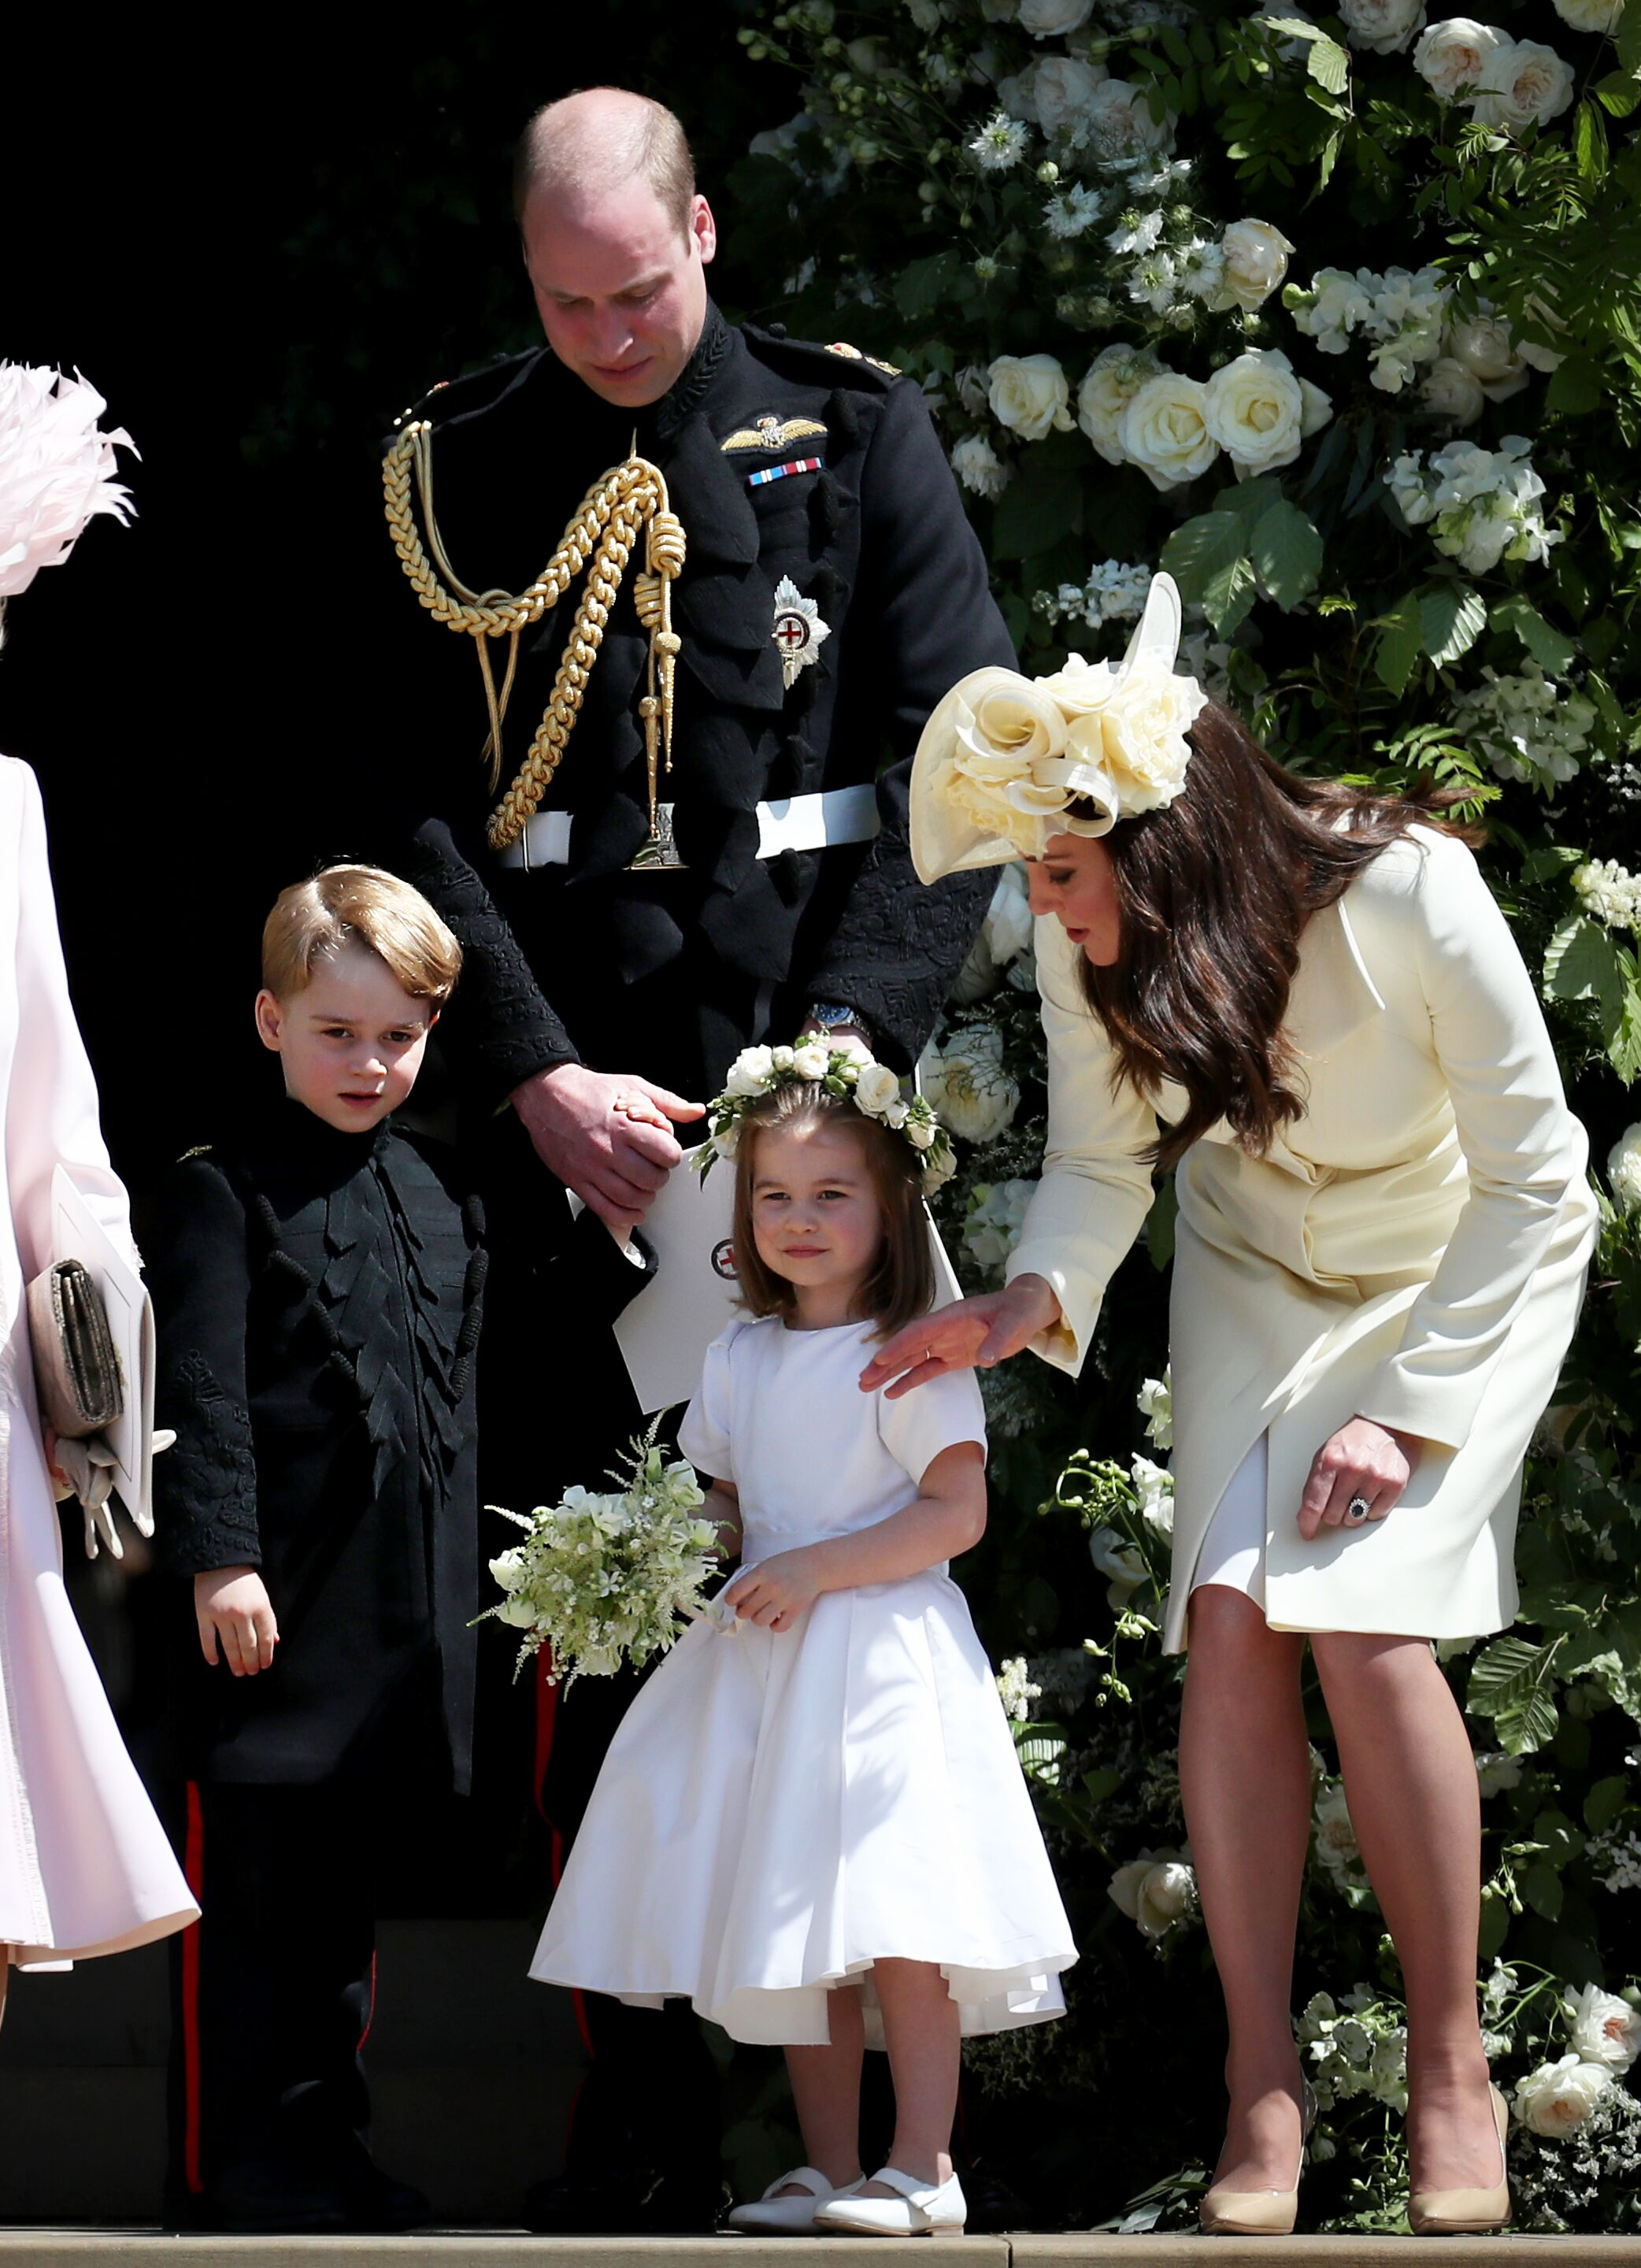 Prince William, Kate Middleton, Prince George and Princess Charlotte after the wedding of Prince Harry and Ms. Meghan Markle at St George's Chapel at Windsor Castle on May 19, 2018 in Windsor, England | Photo: Getty Images